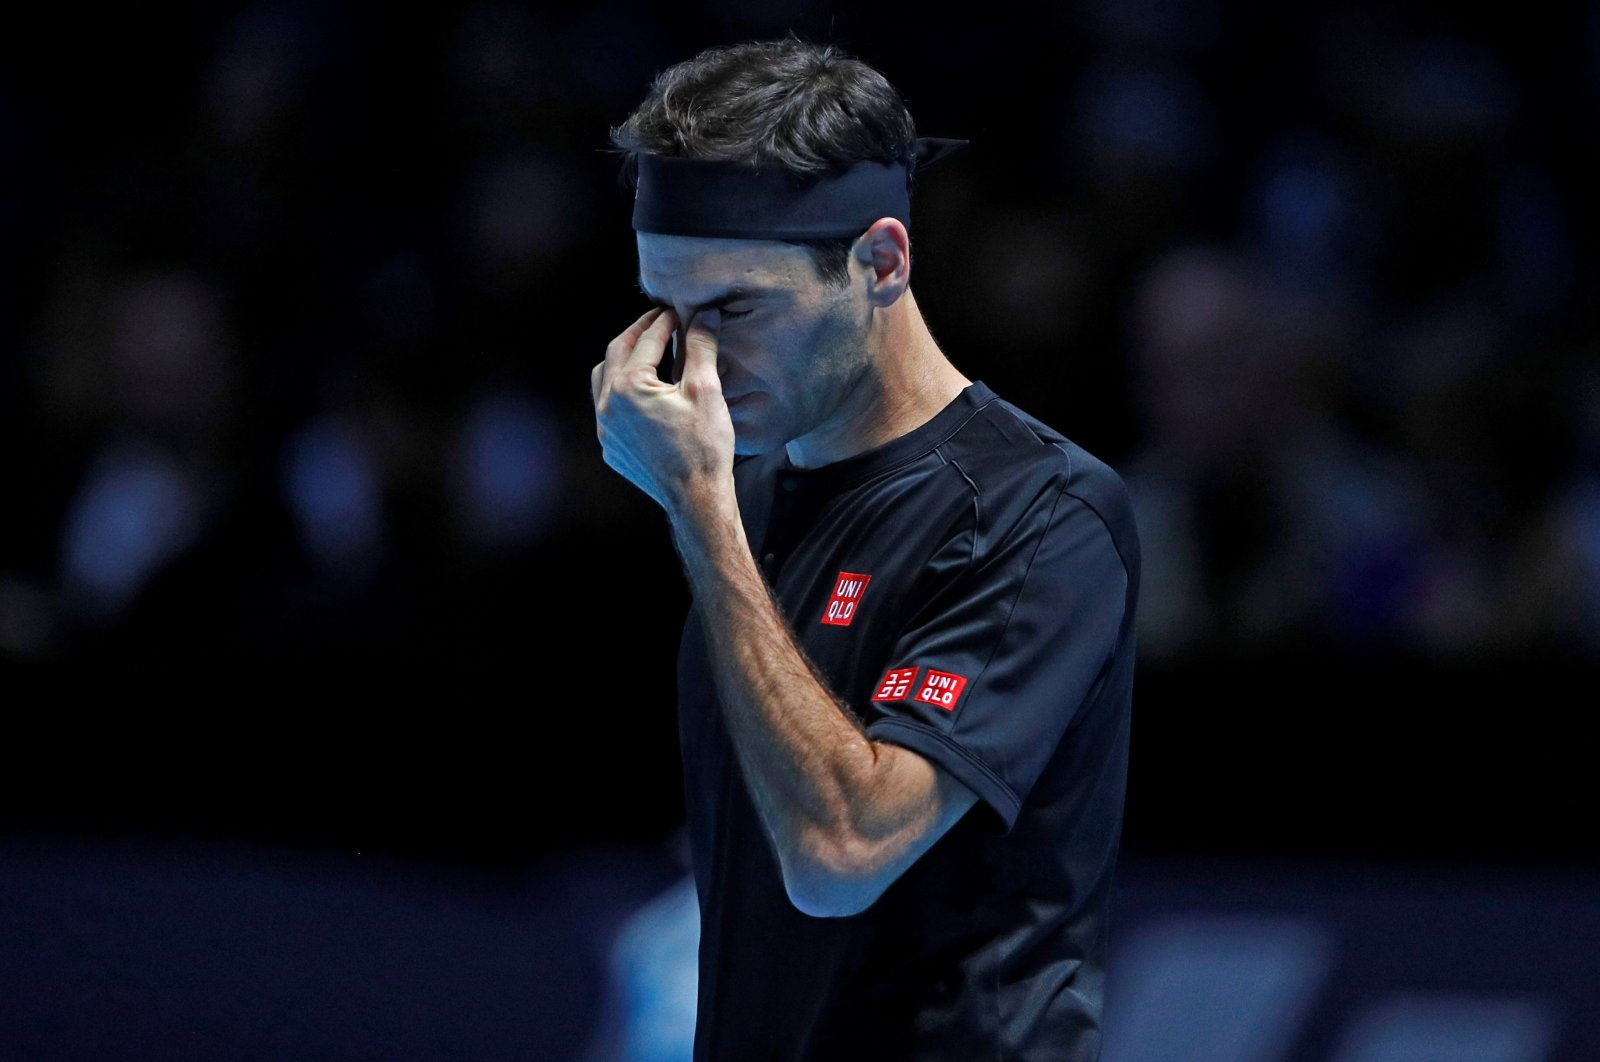 Roger Federer gestures during an ATP World Tour Finals tournament match at the O2 Arena in London, Britain, Nov. 10, 2019. (AFP Photo)